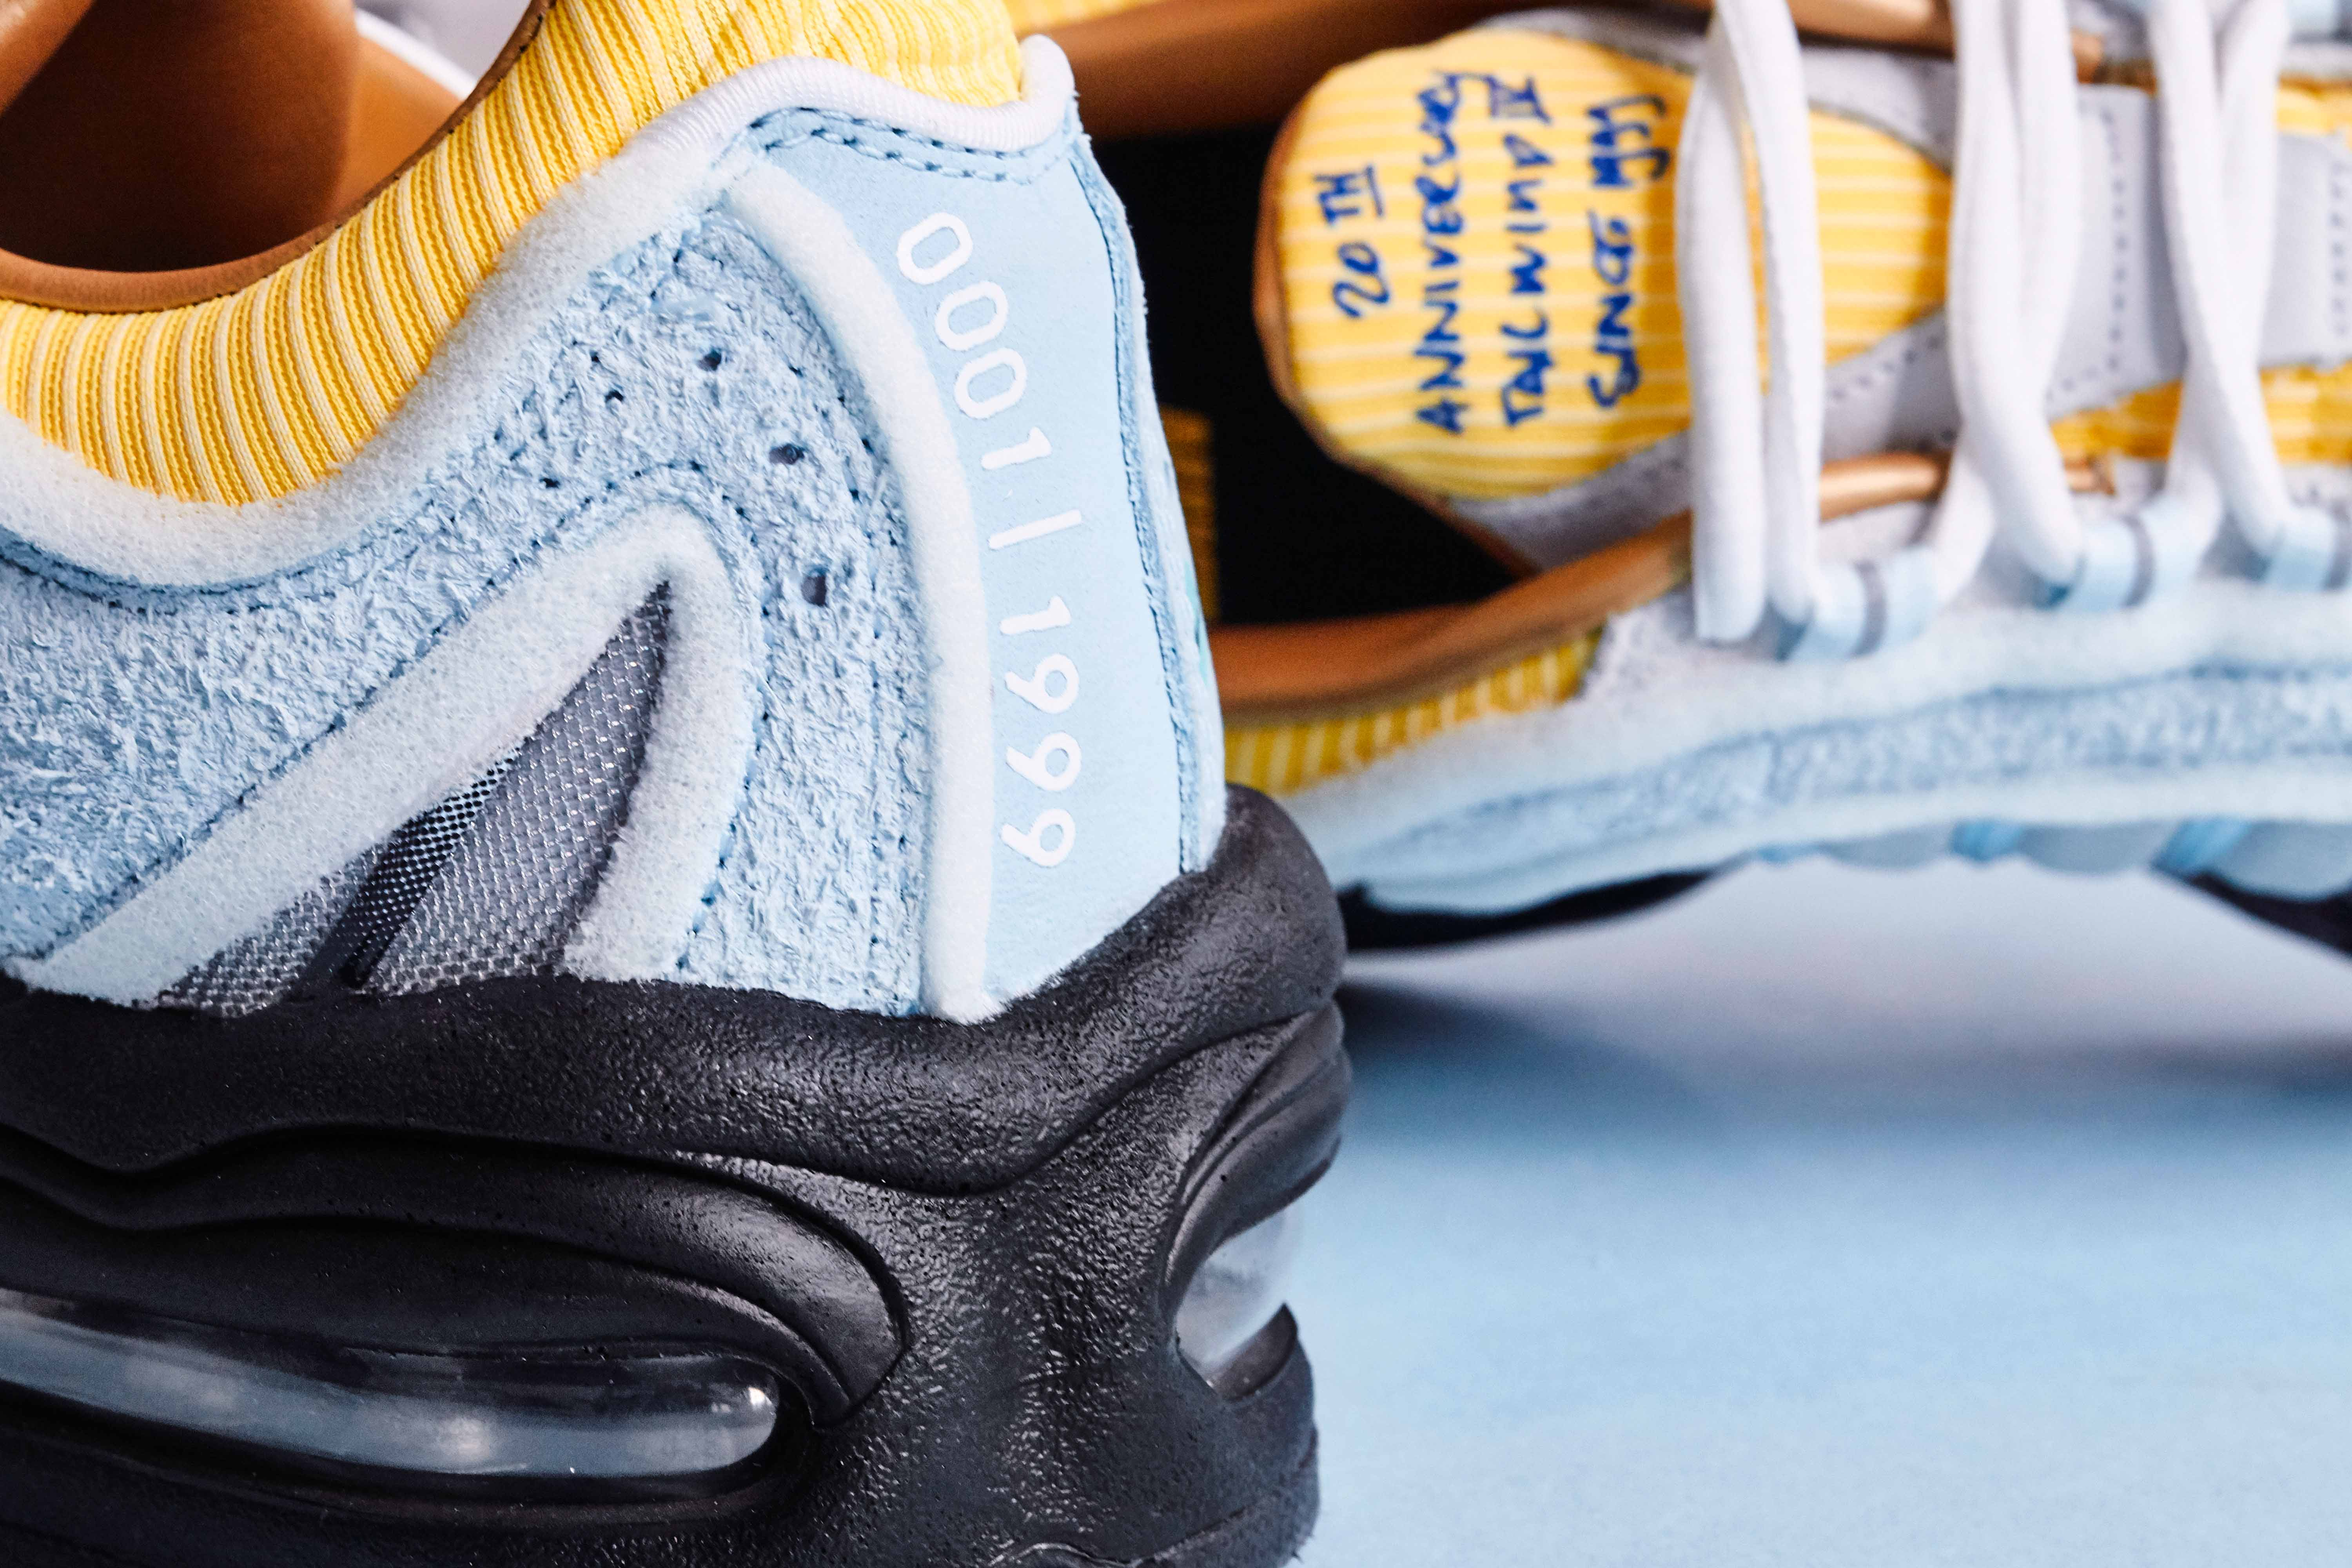 To celebrate their 20th anniversary, Sneakersnstuff will